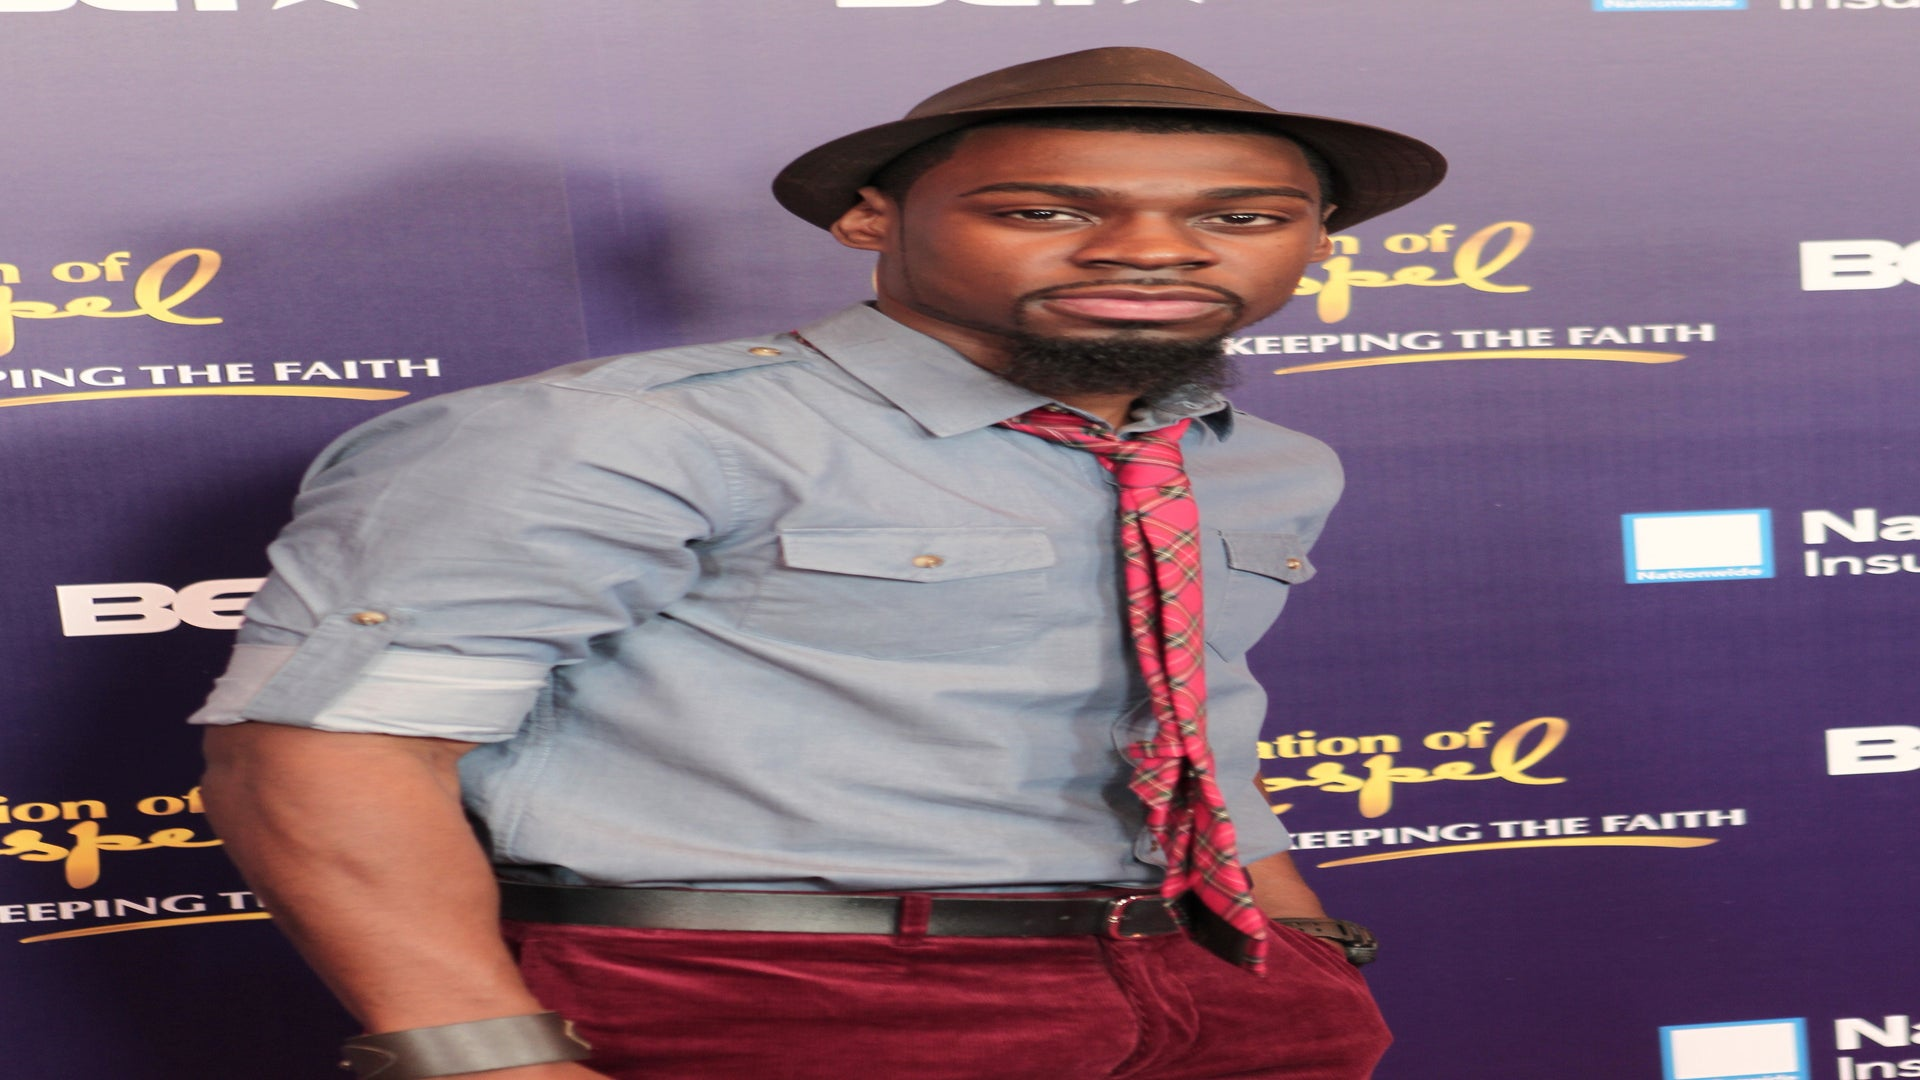 5 Questions with Gospel Star Mali Music on His Debut & Meeting Akon